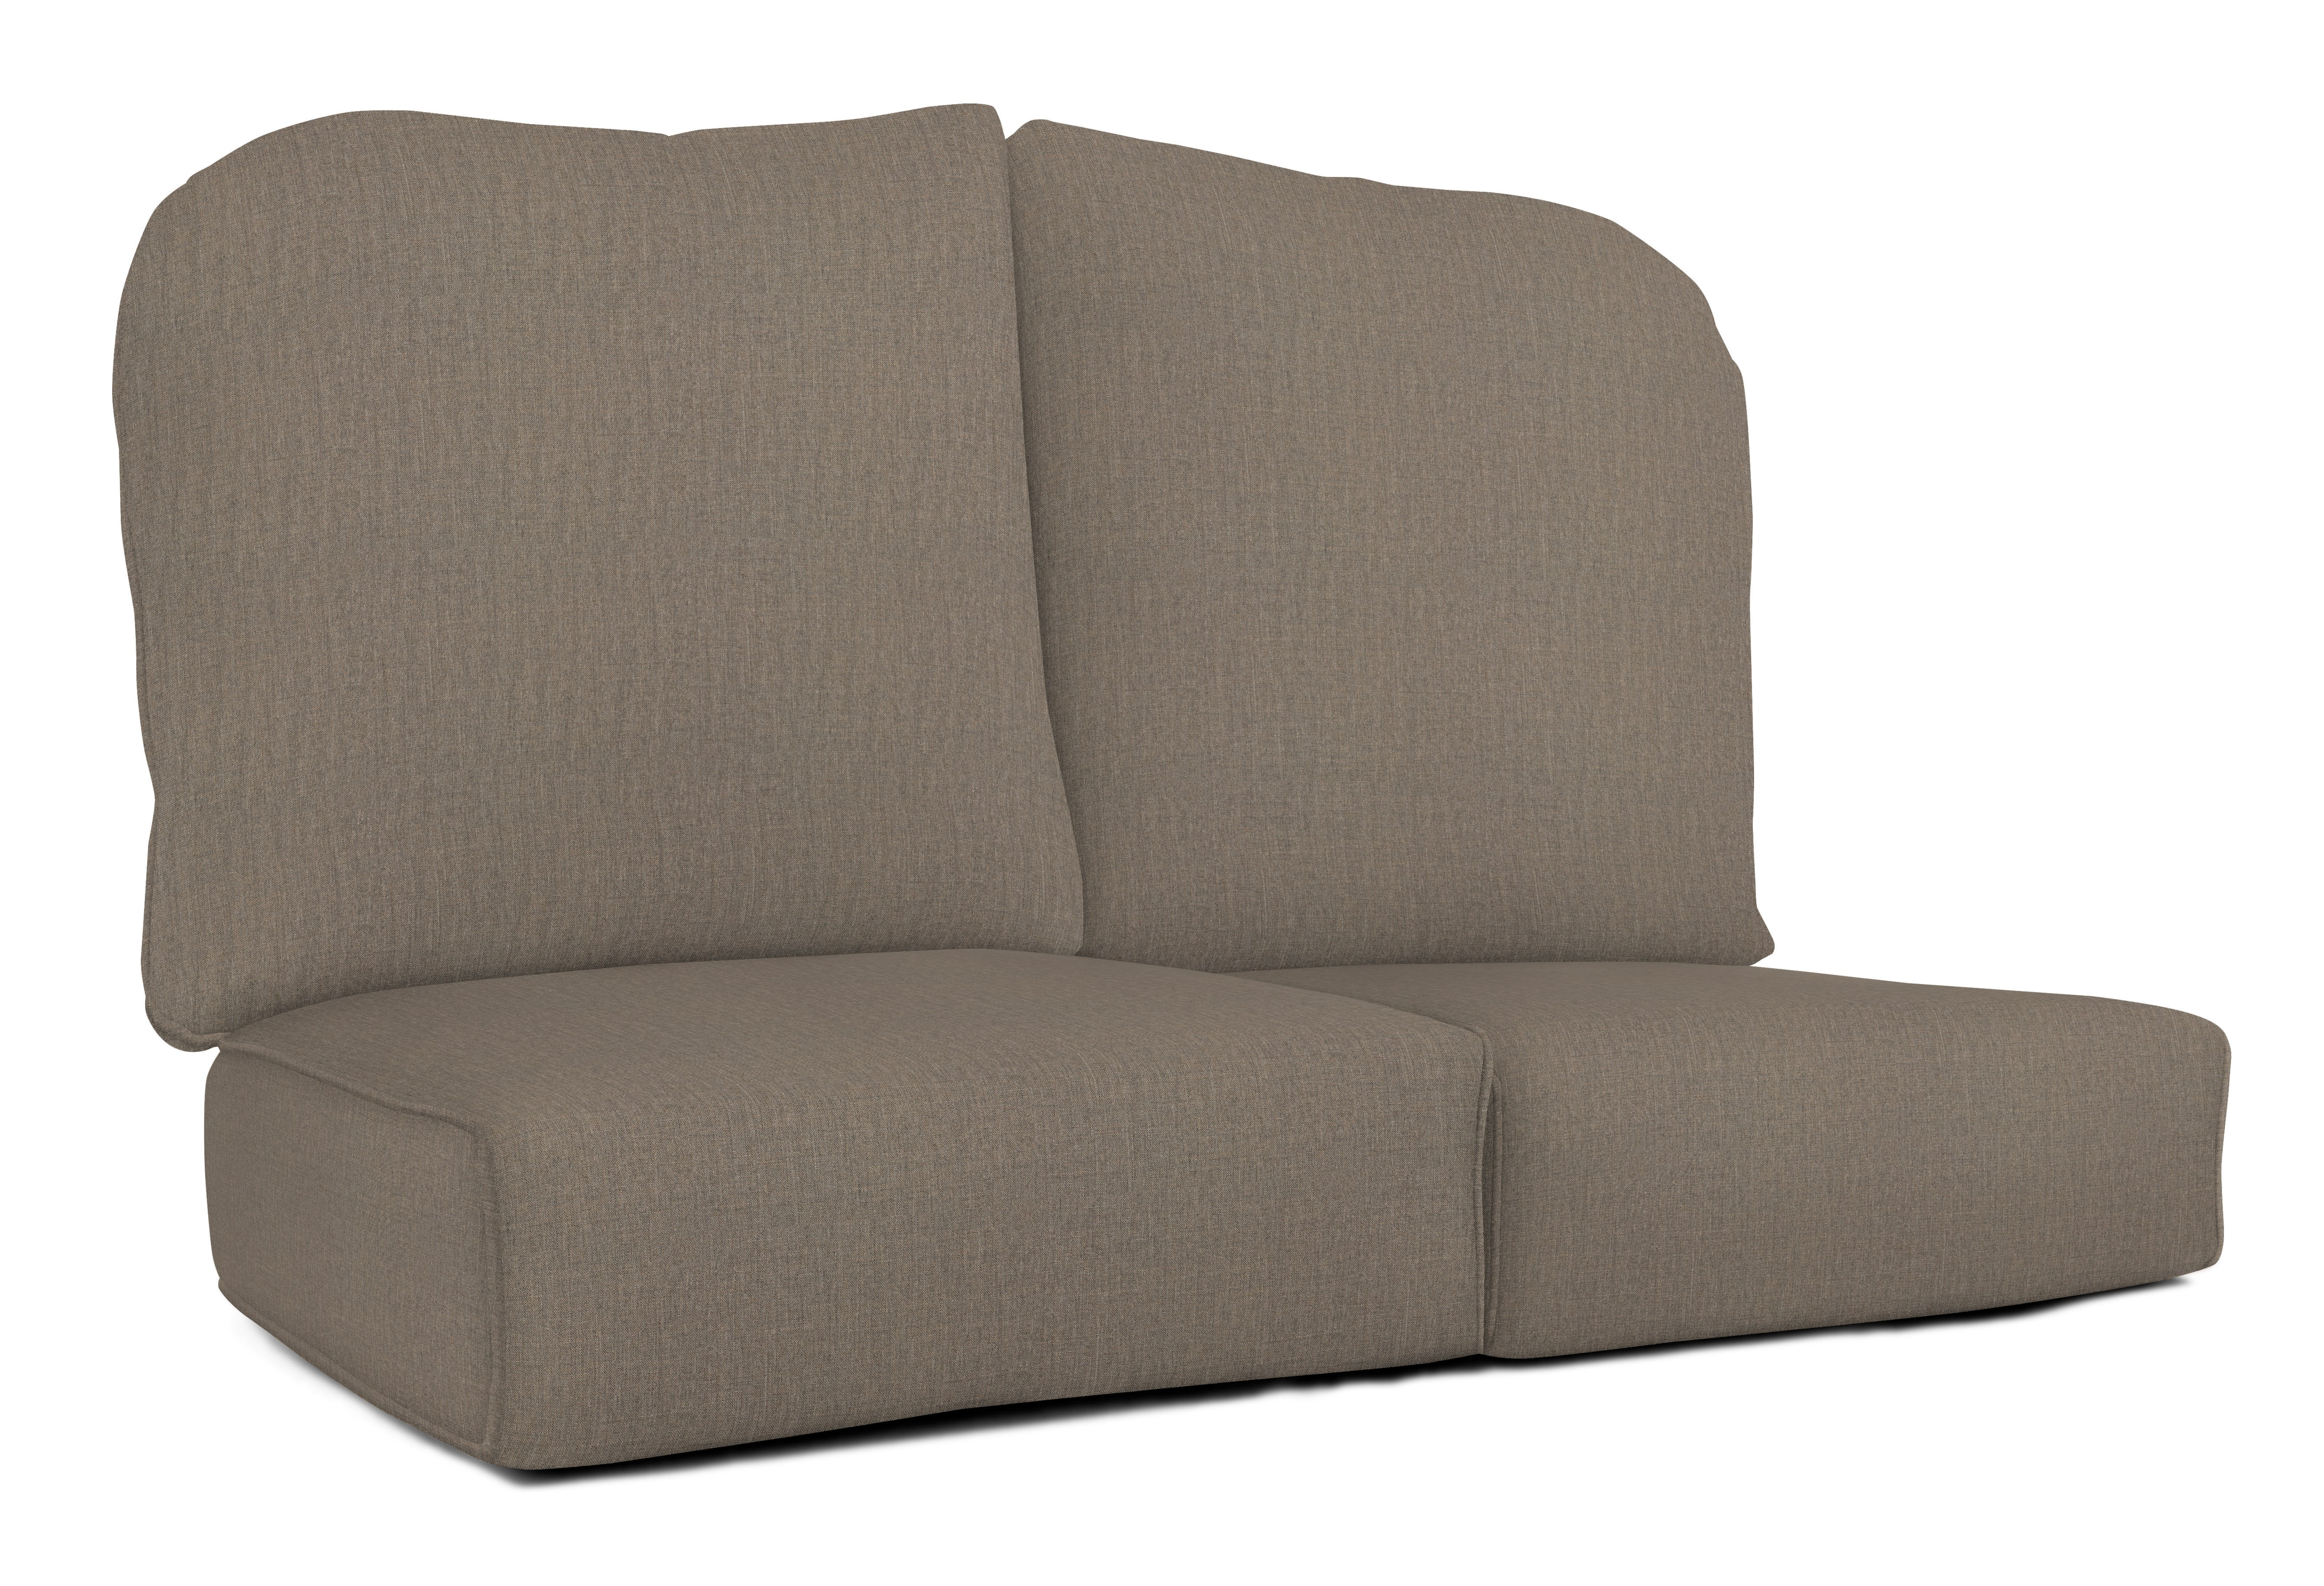 fascinating concept cushion chair slipcovers slip sofa and t covers loveseat matching photos